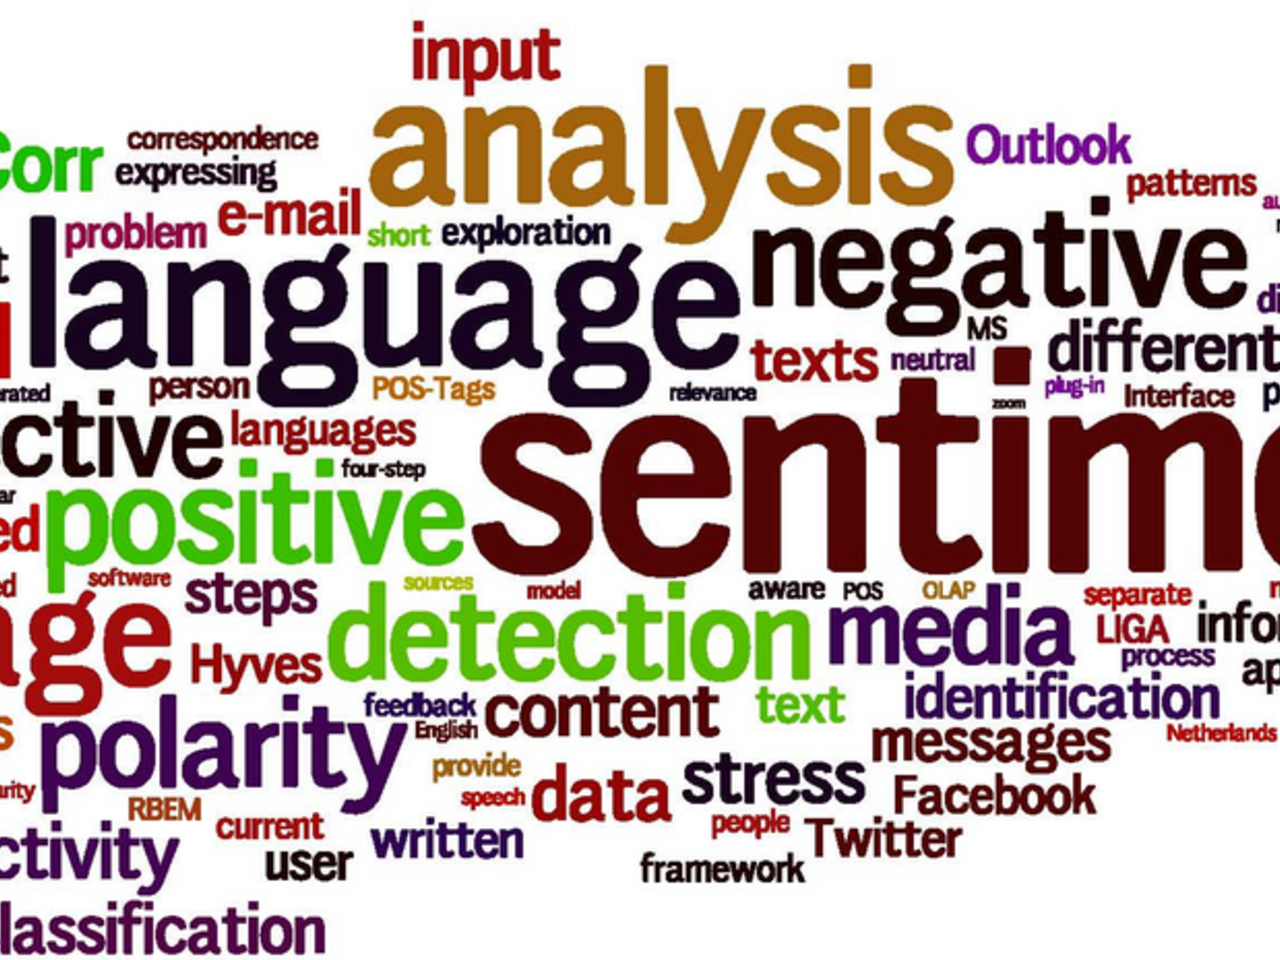 Sentimental Analysis in Nepali Language with RNN